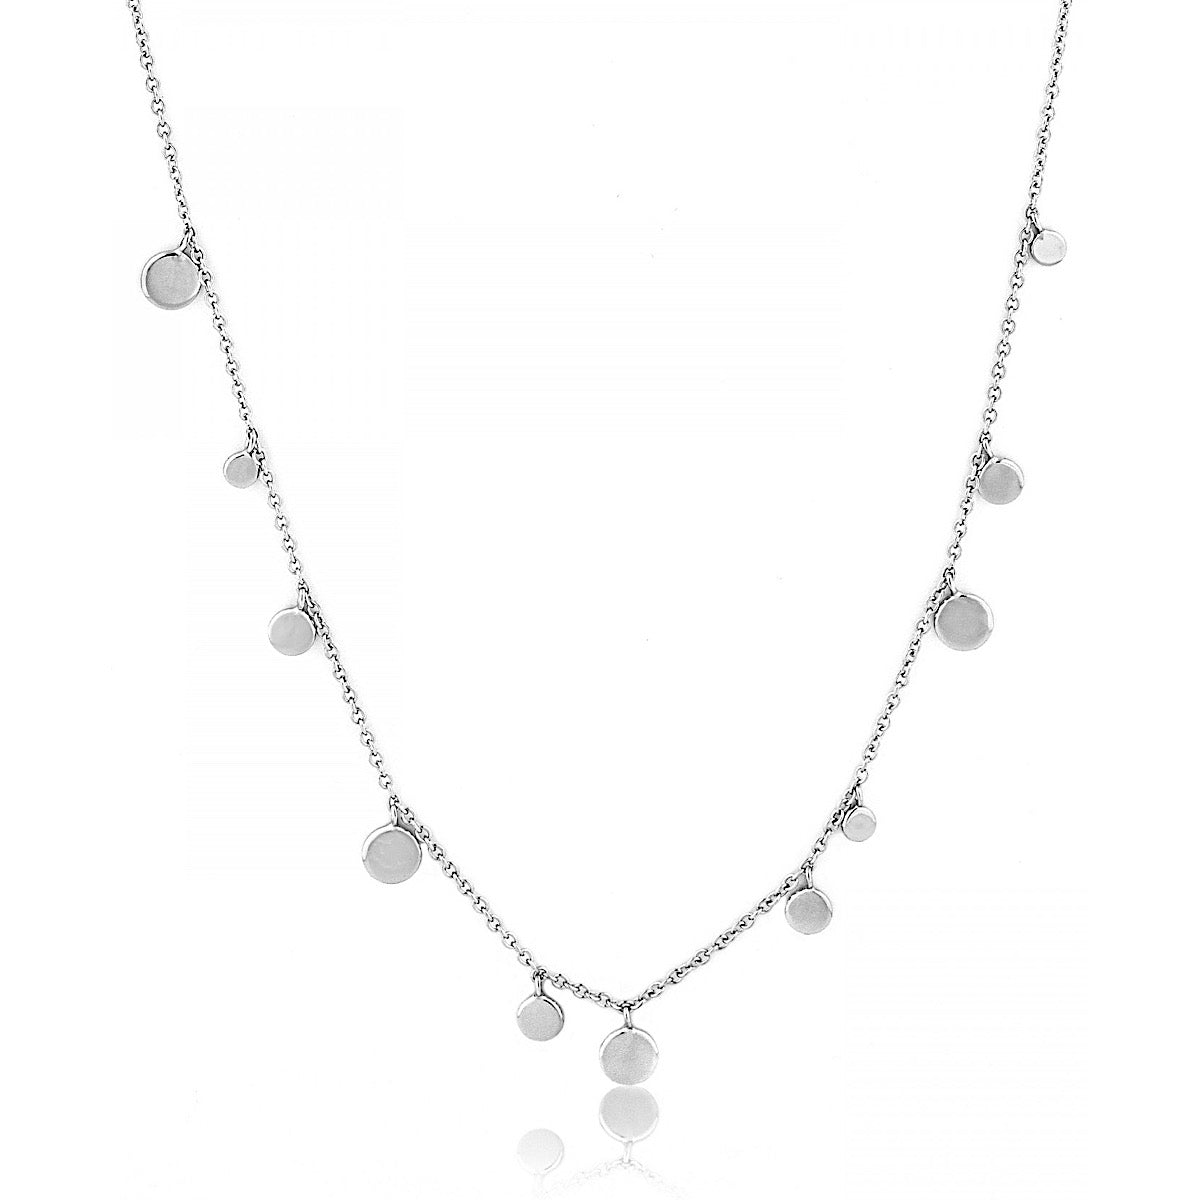 Ania Haie Silver Geometry Mixed Discs Necklace | More Than Just at Gift | Narborough Hall